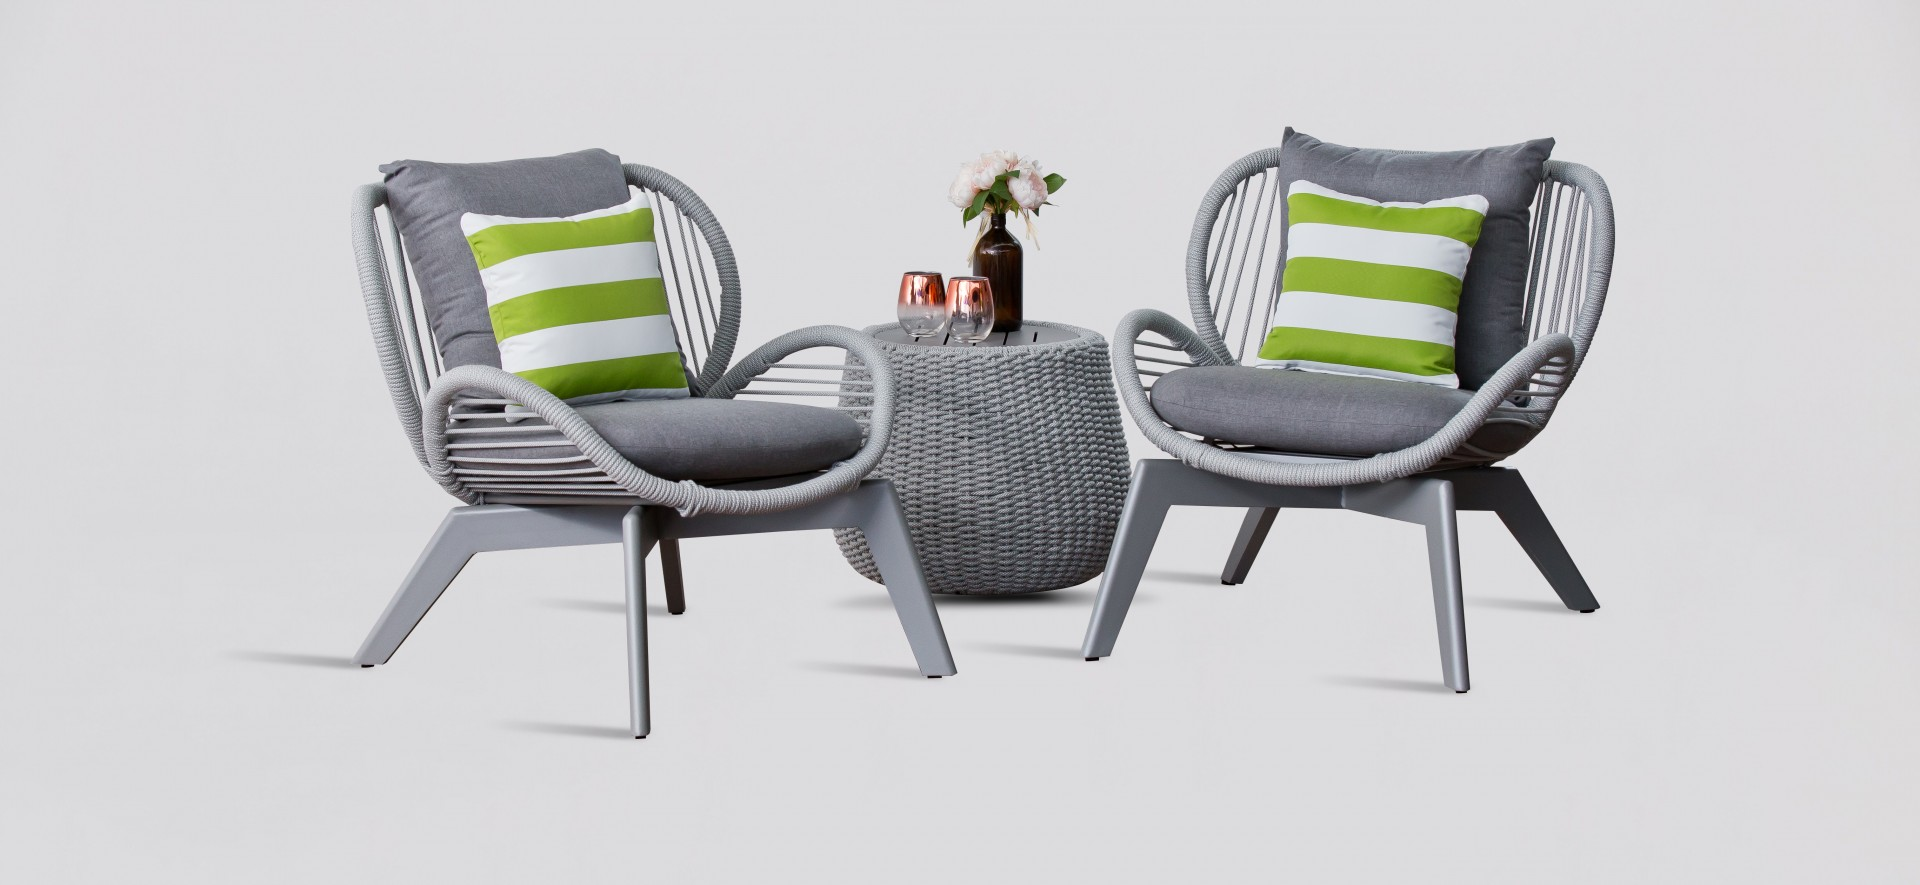 Charcoal Outdoor Lounge Chairs - Seville